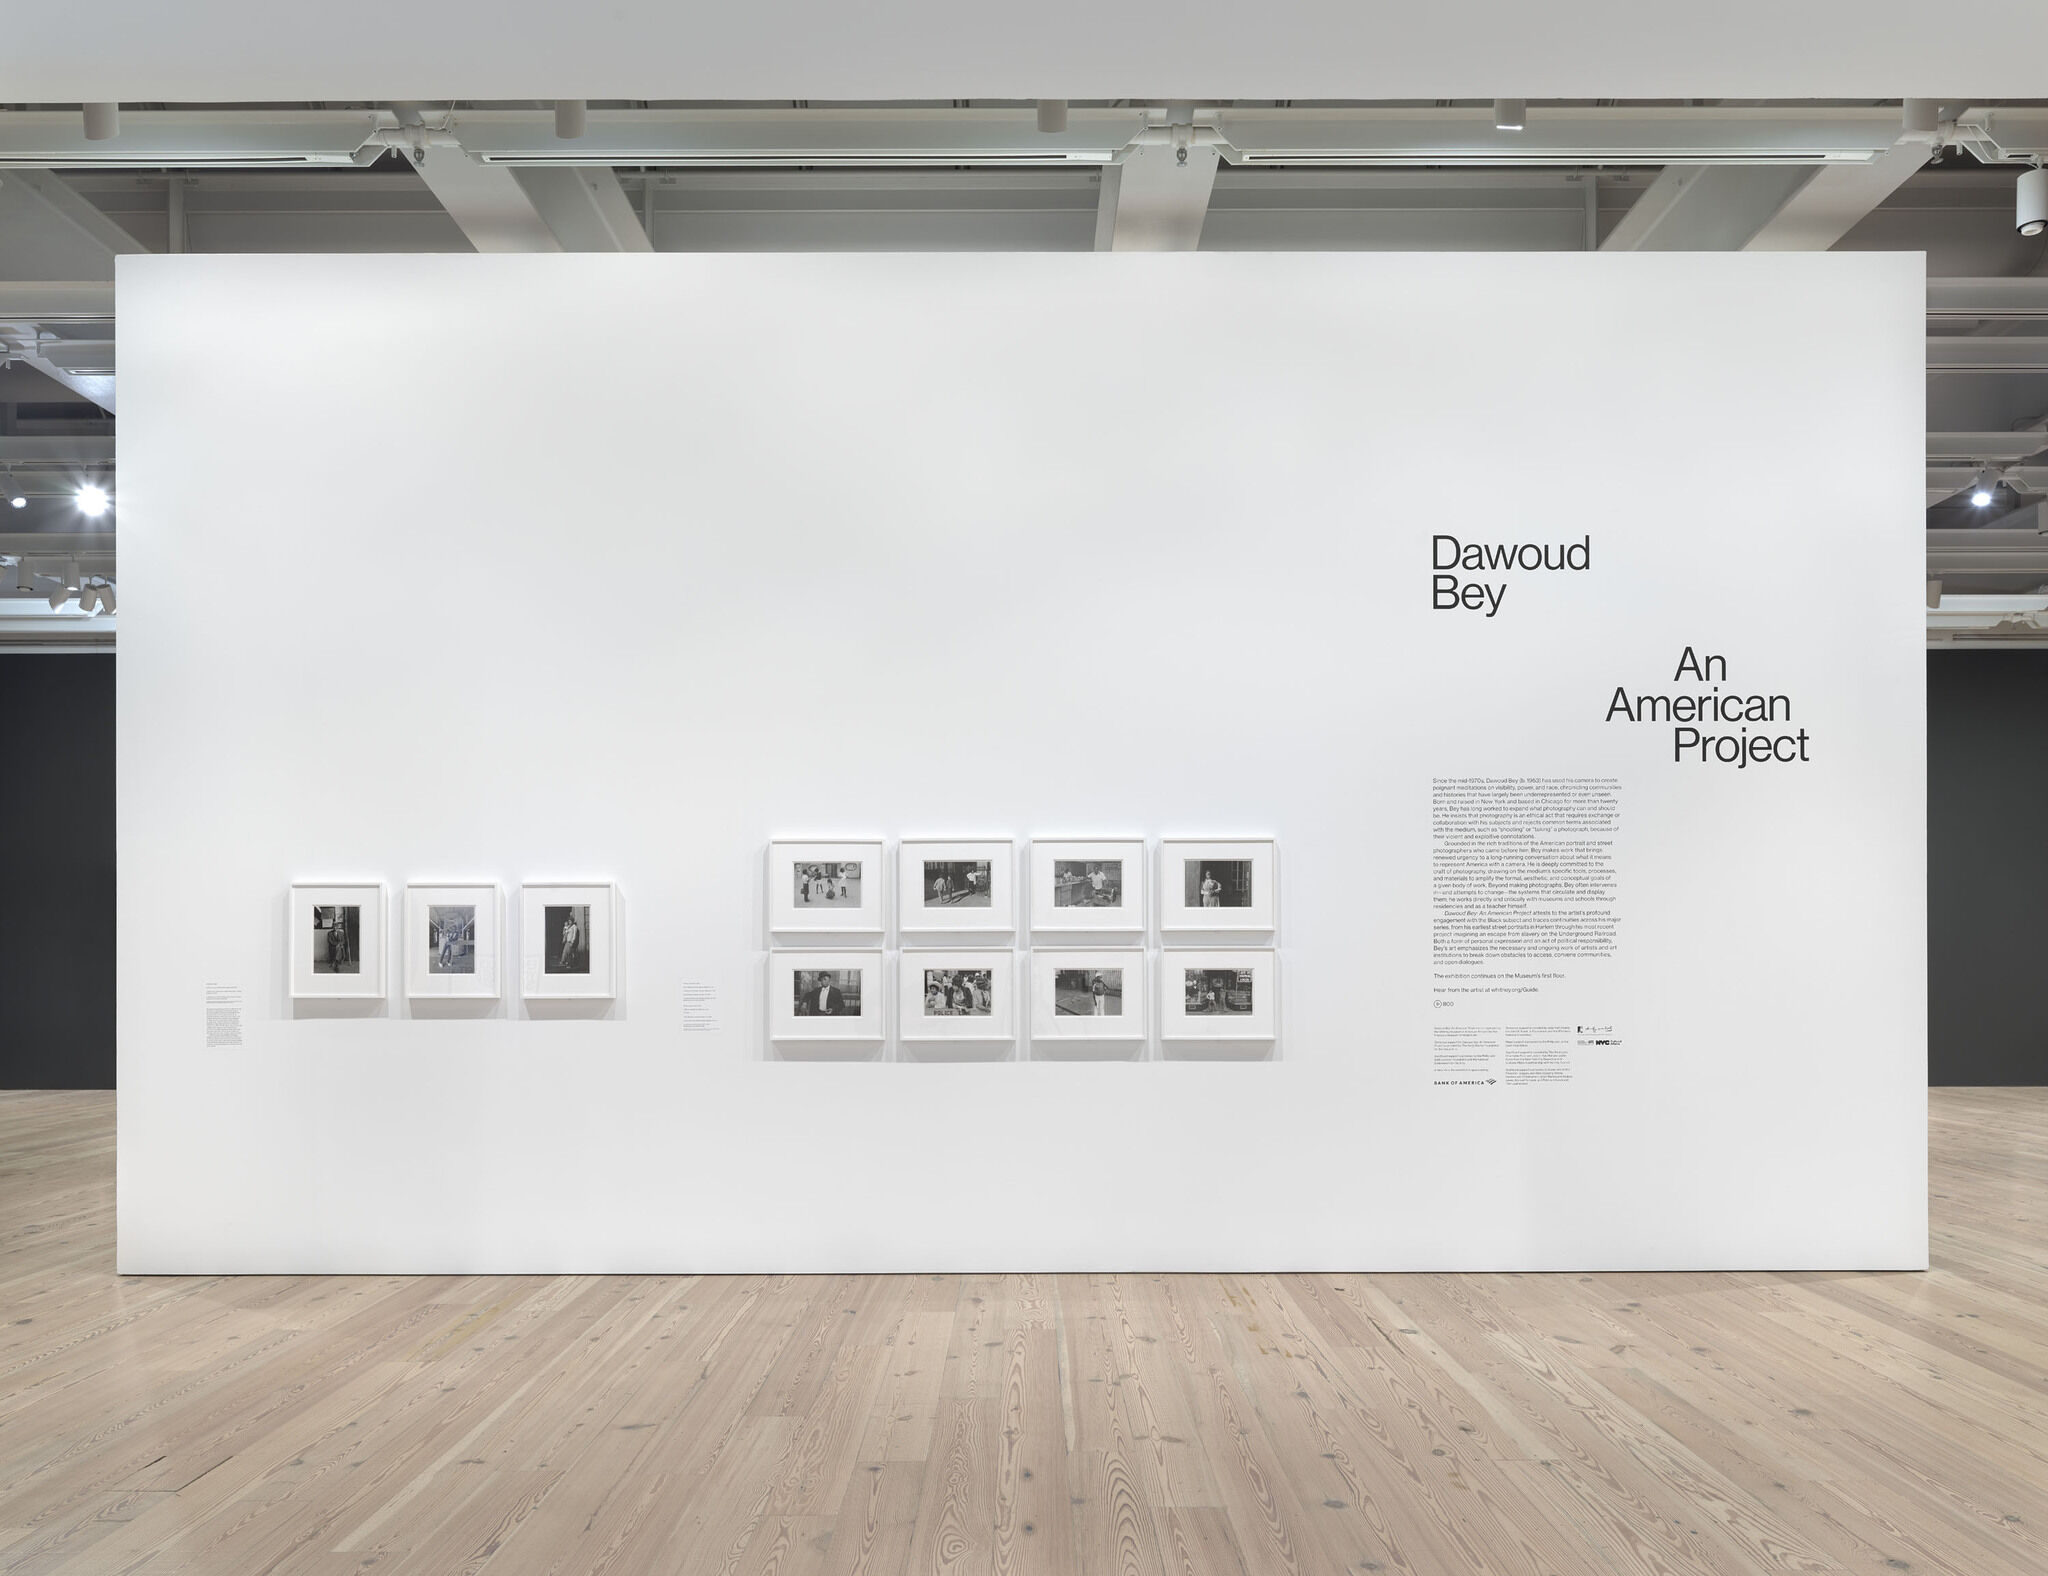 The opening exhibition wall for Dawoud Bey, which features the exhibition's introductory wall text decal and eleven framed photographs.